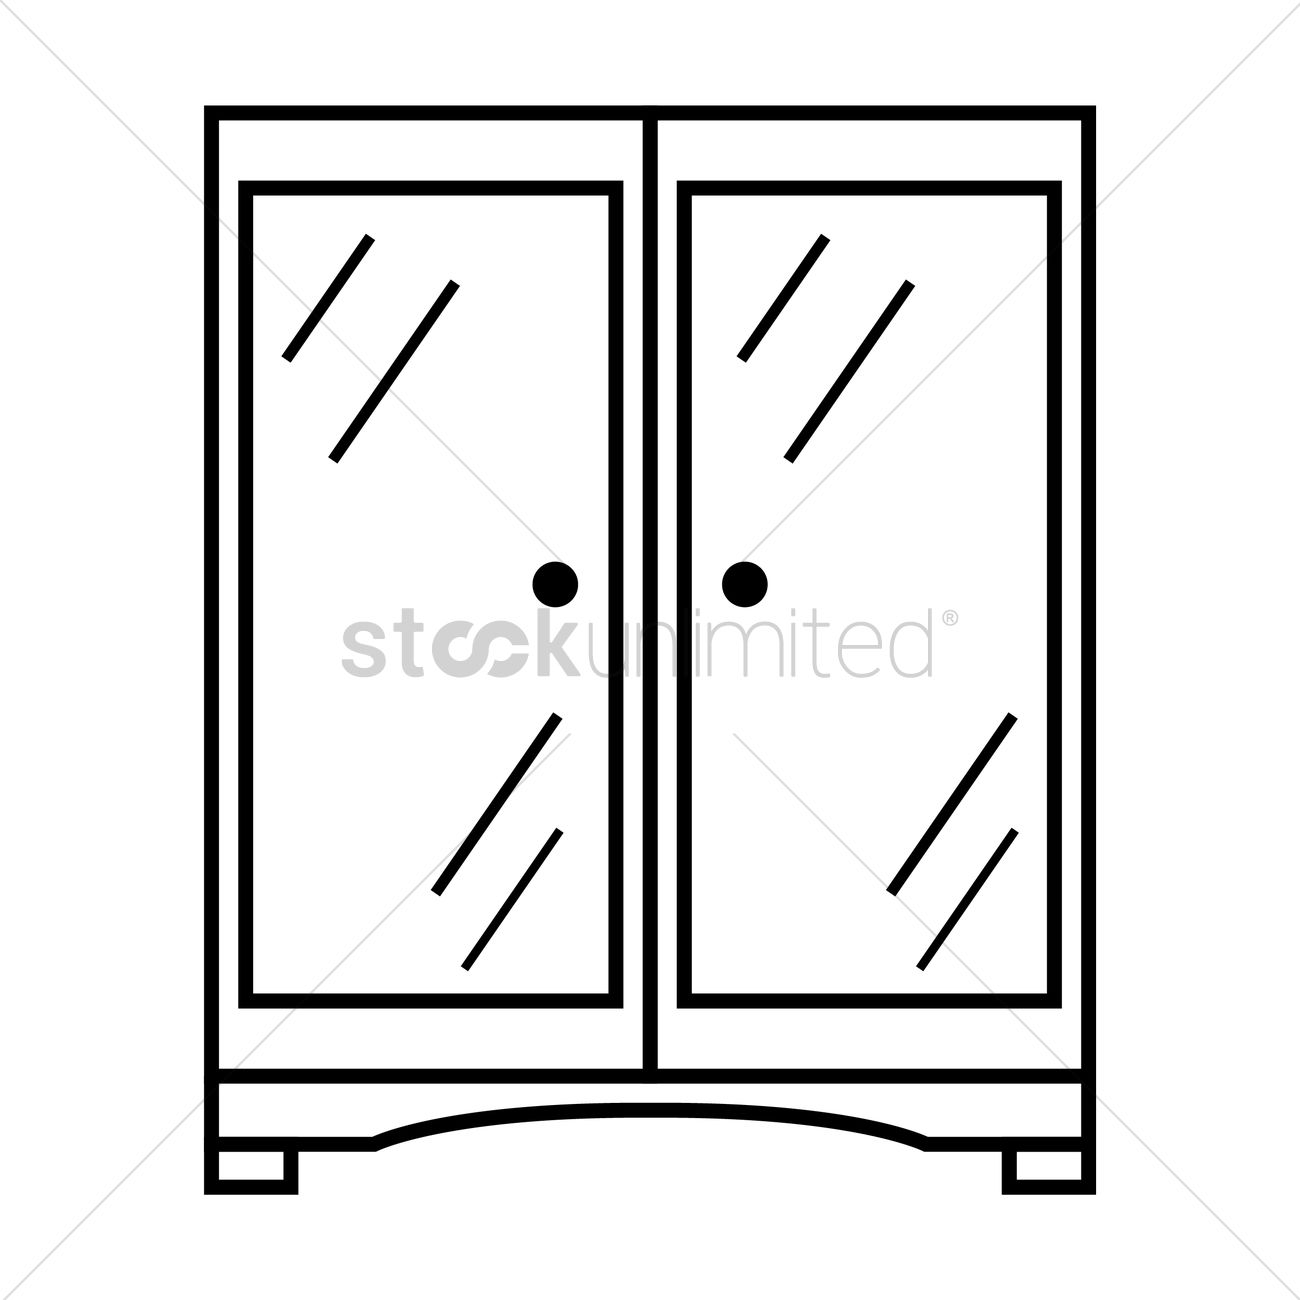 Cupboard clipart  Glass cupboard Vector Image - 1375457 | StockUnlimited